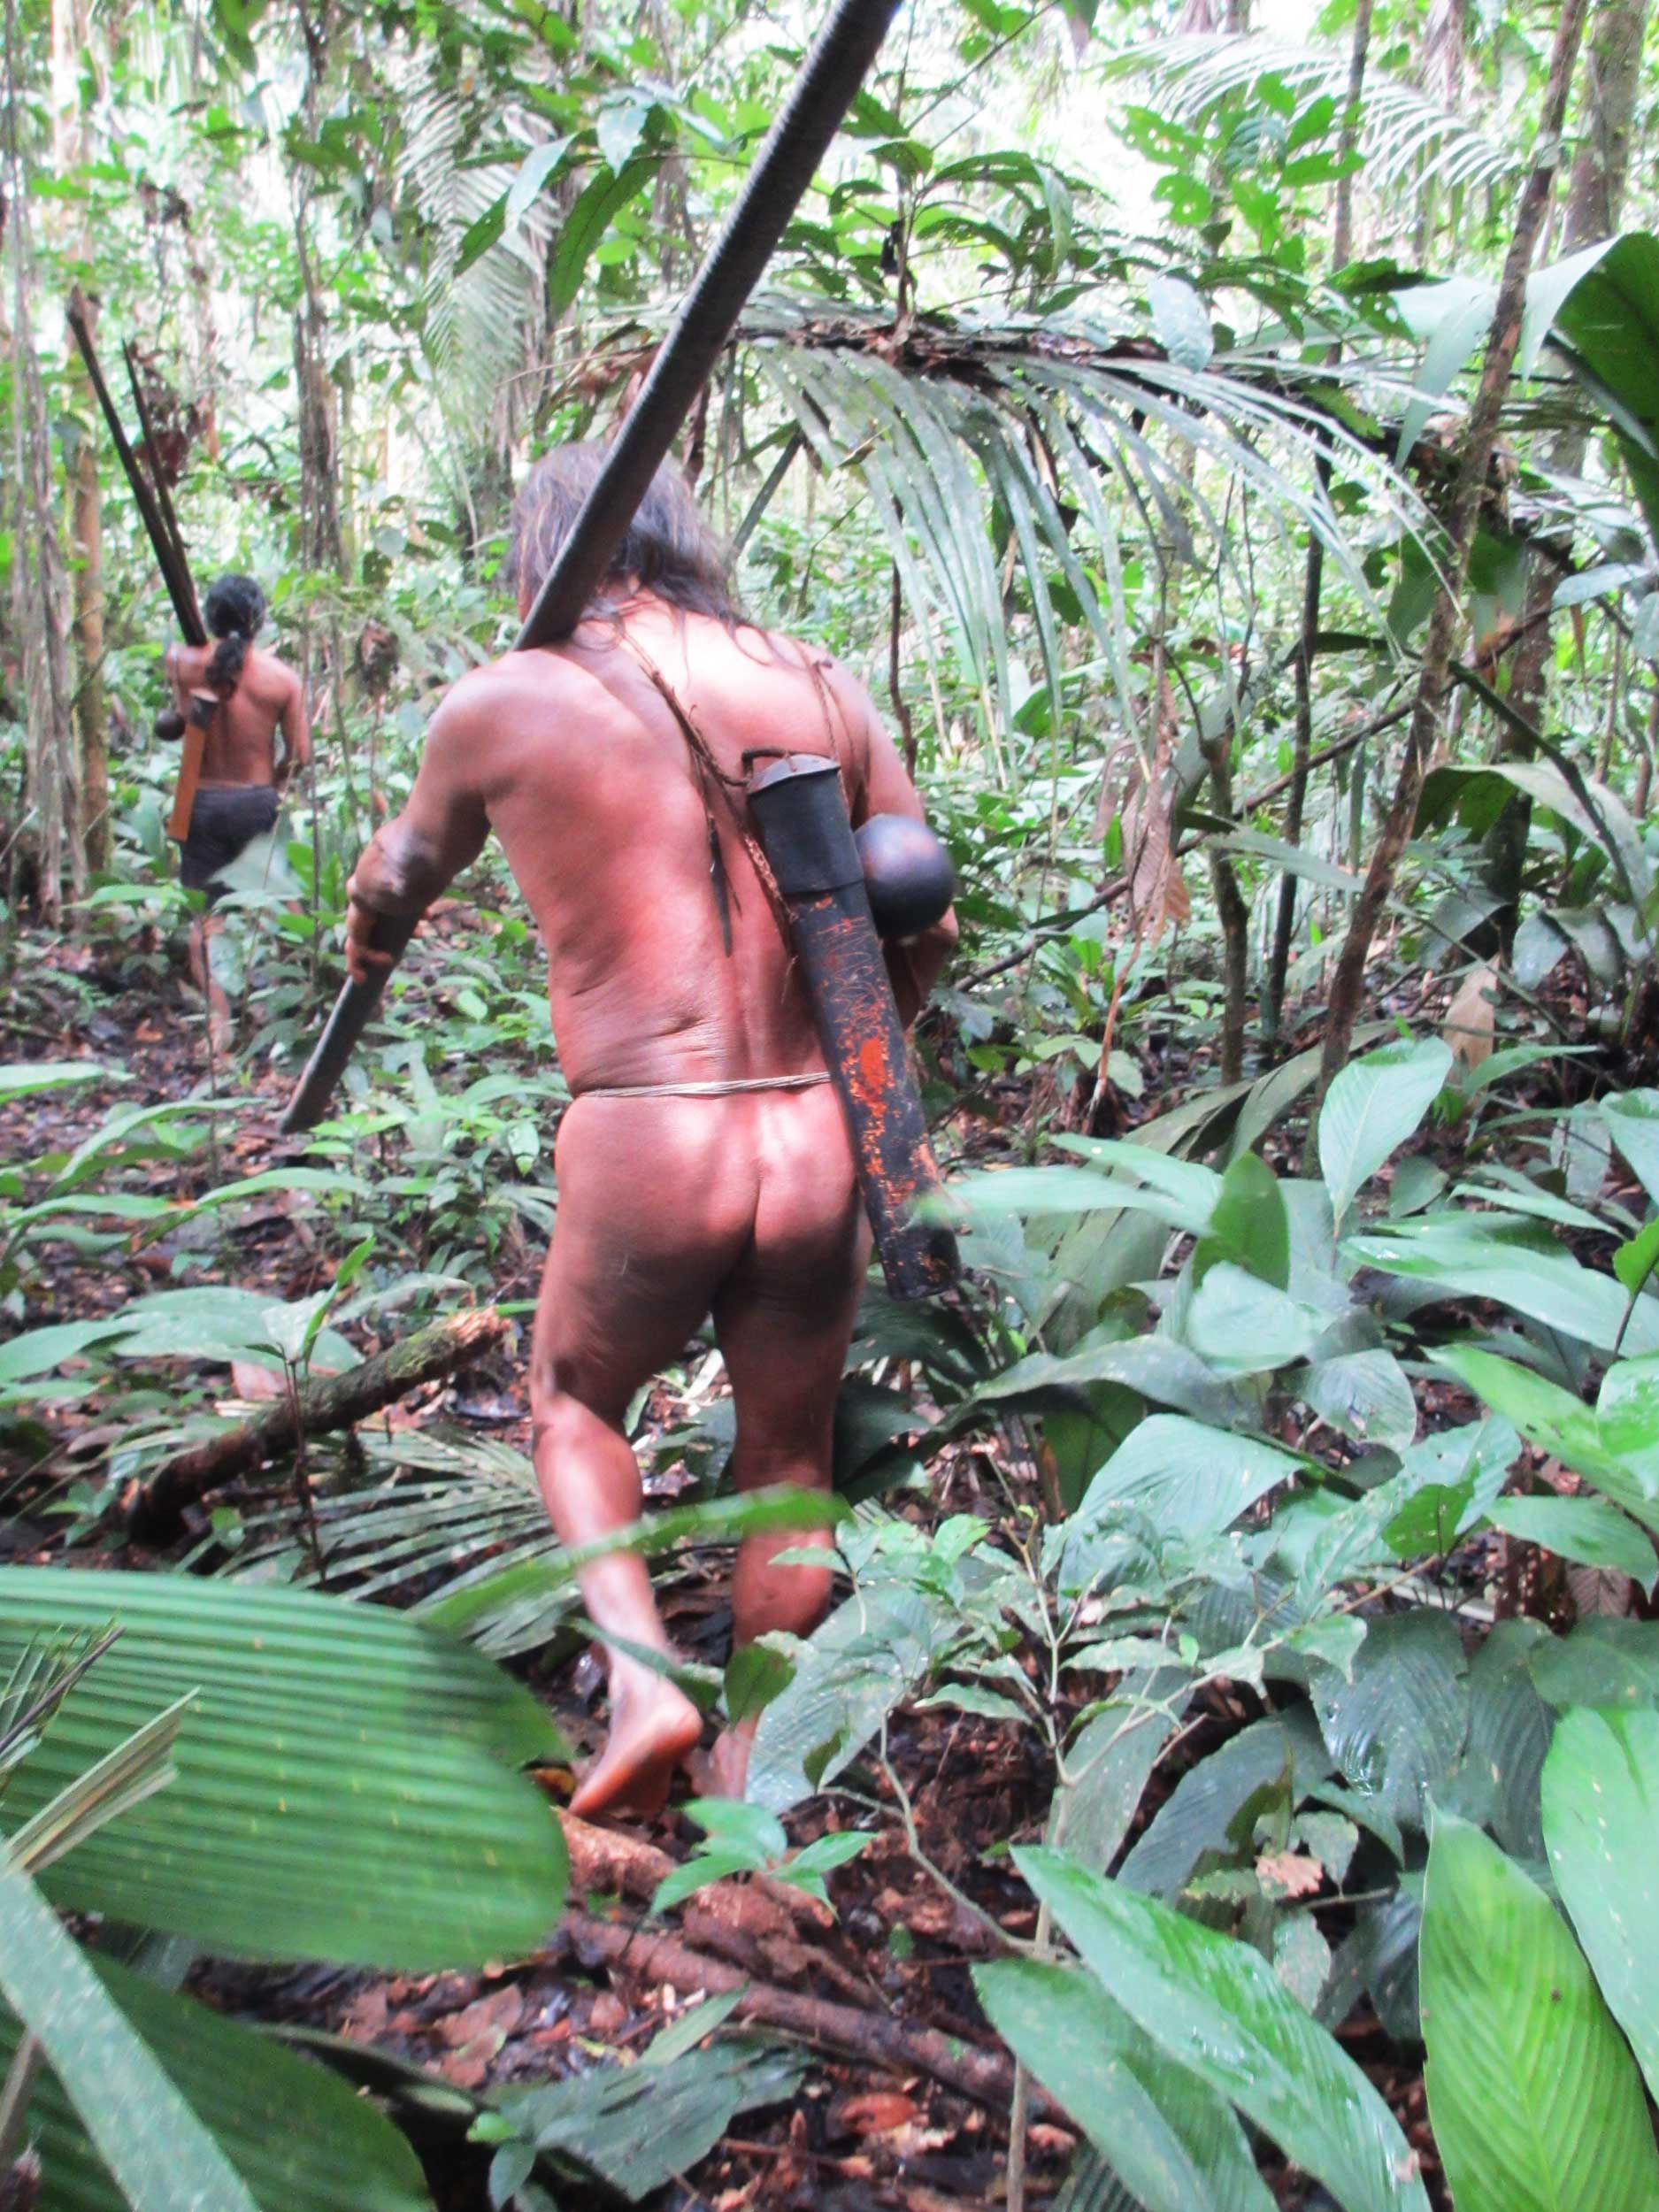 Two naked hunters in the jungle carrying spears, blow-guns and darts, Bameno, Ecuador